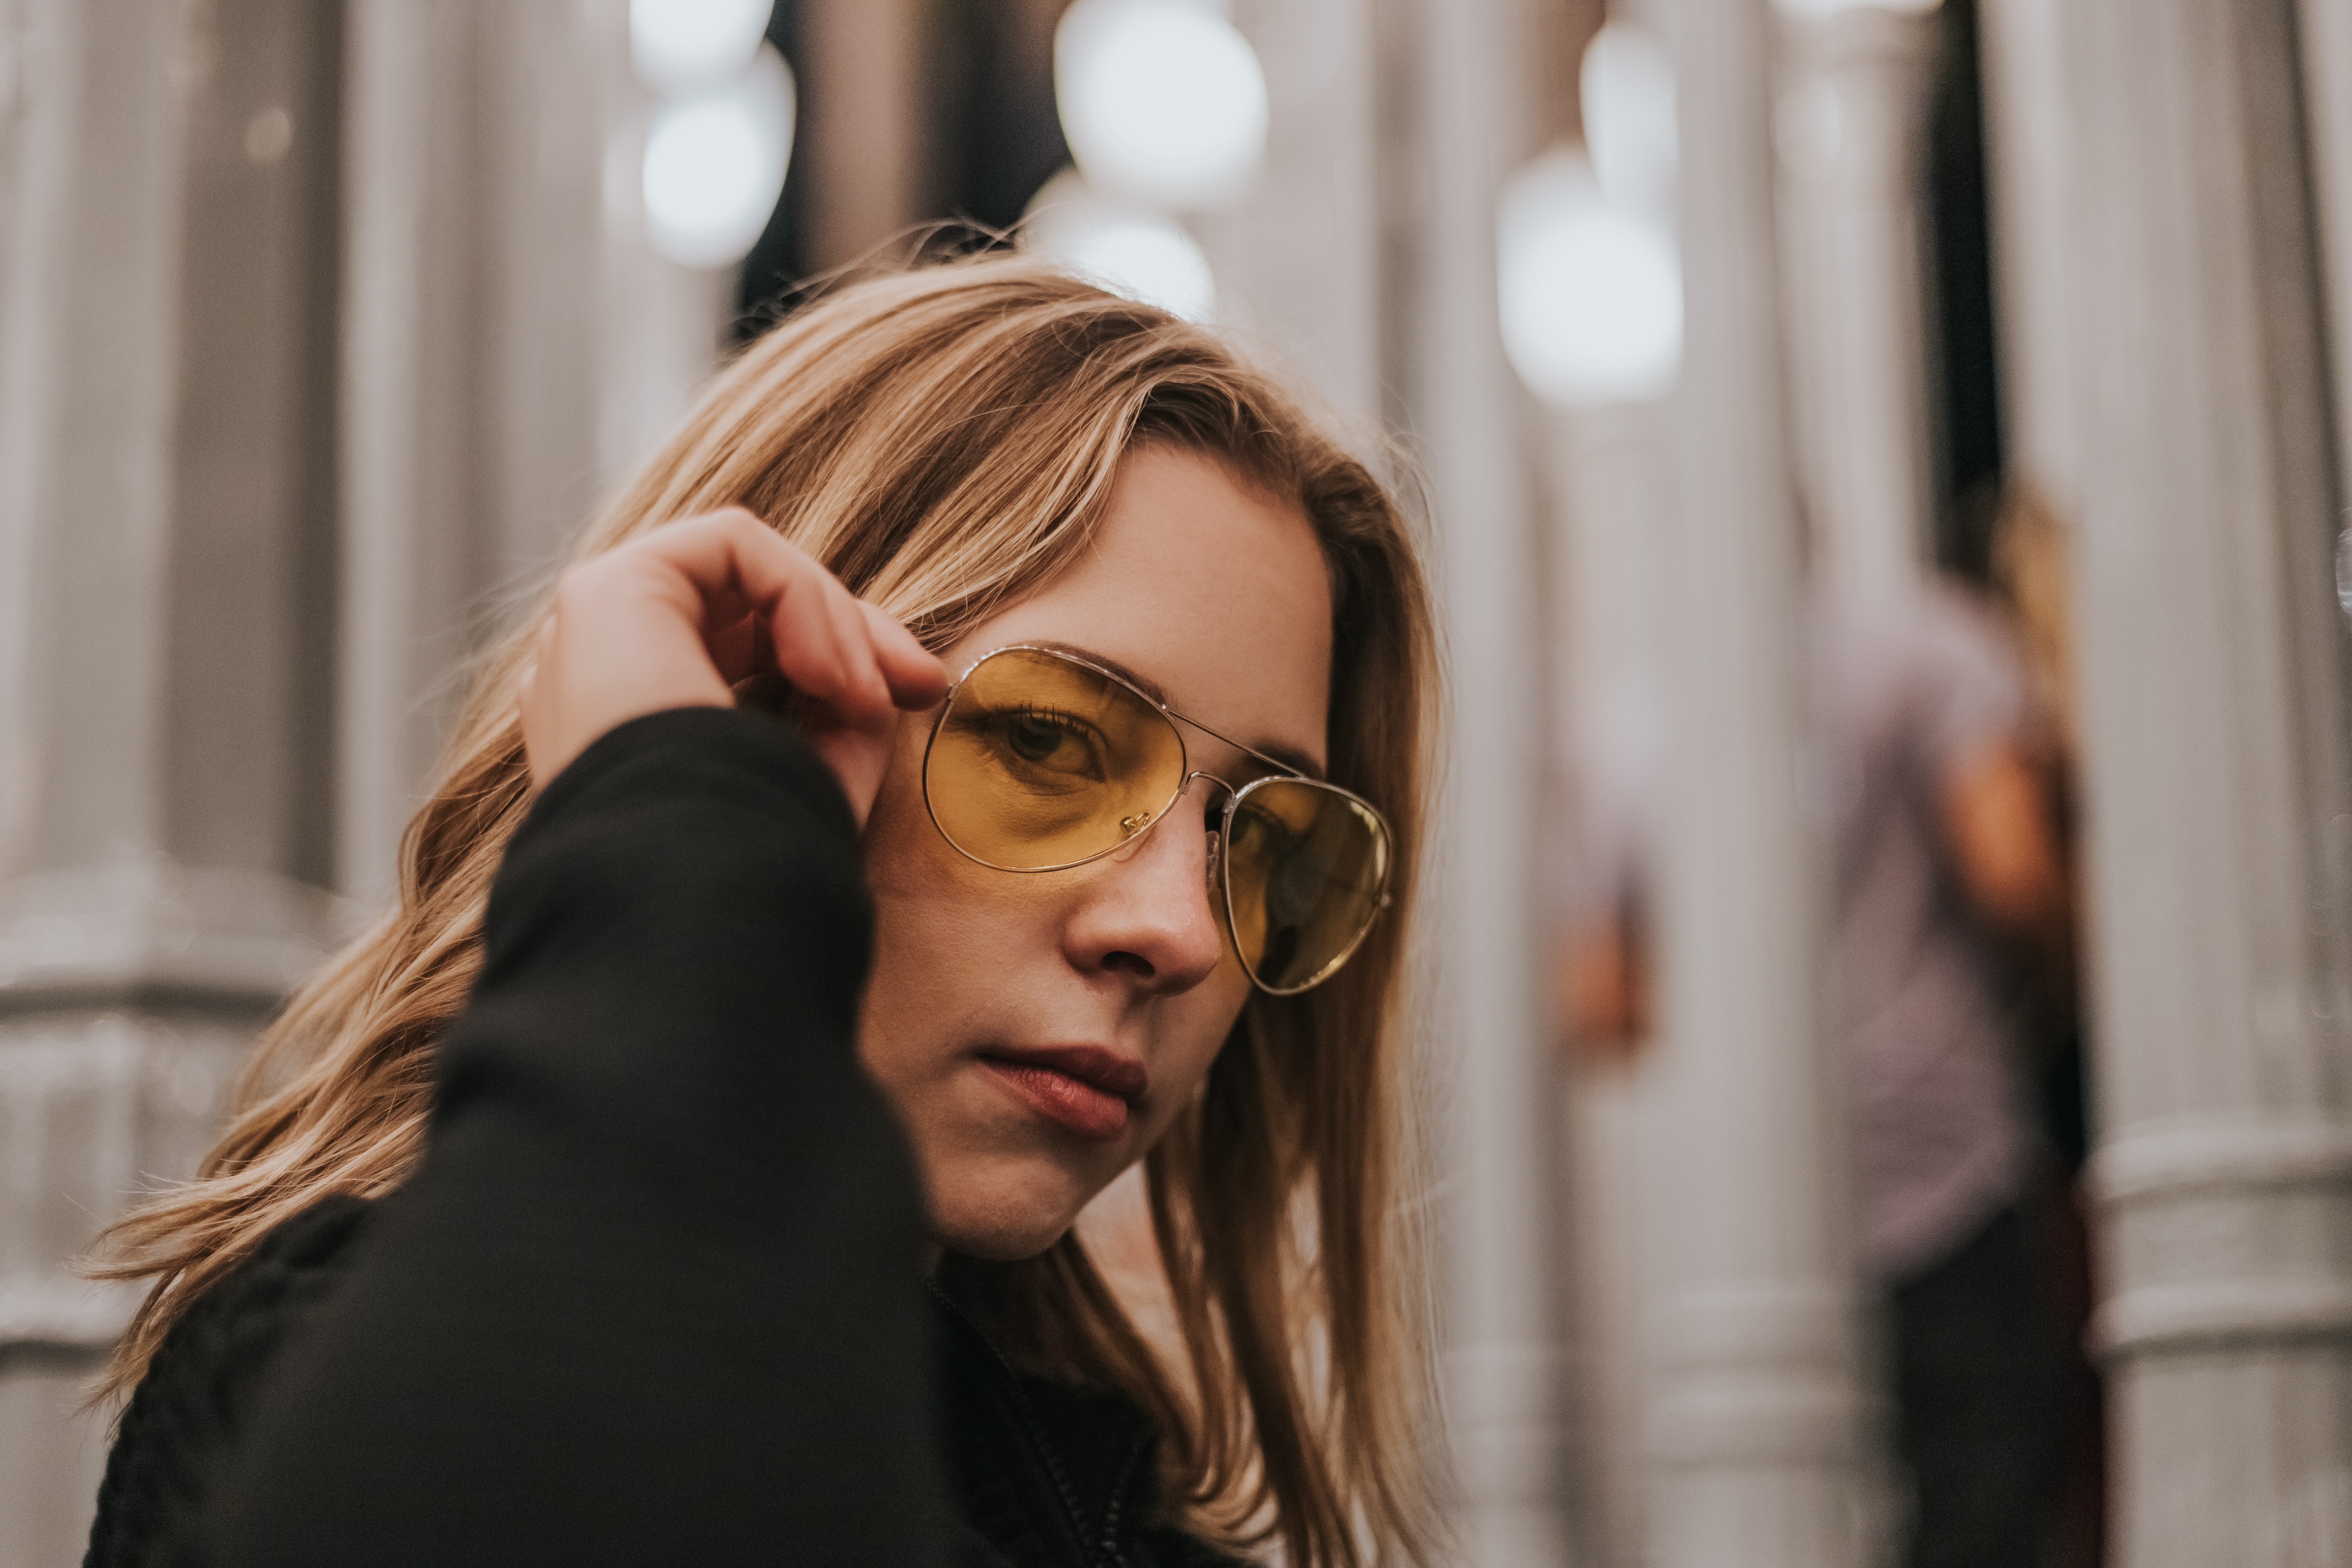 focus of photo of woman holding her sunglasses